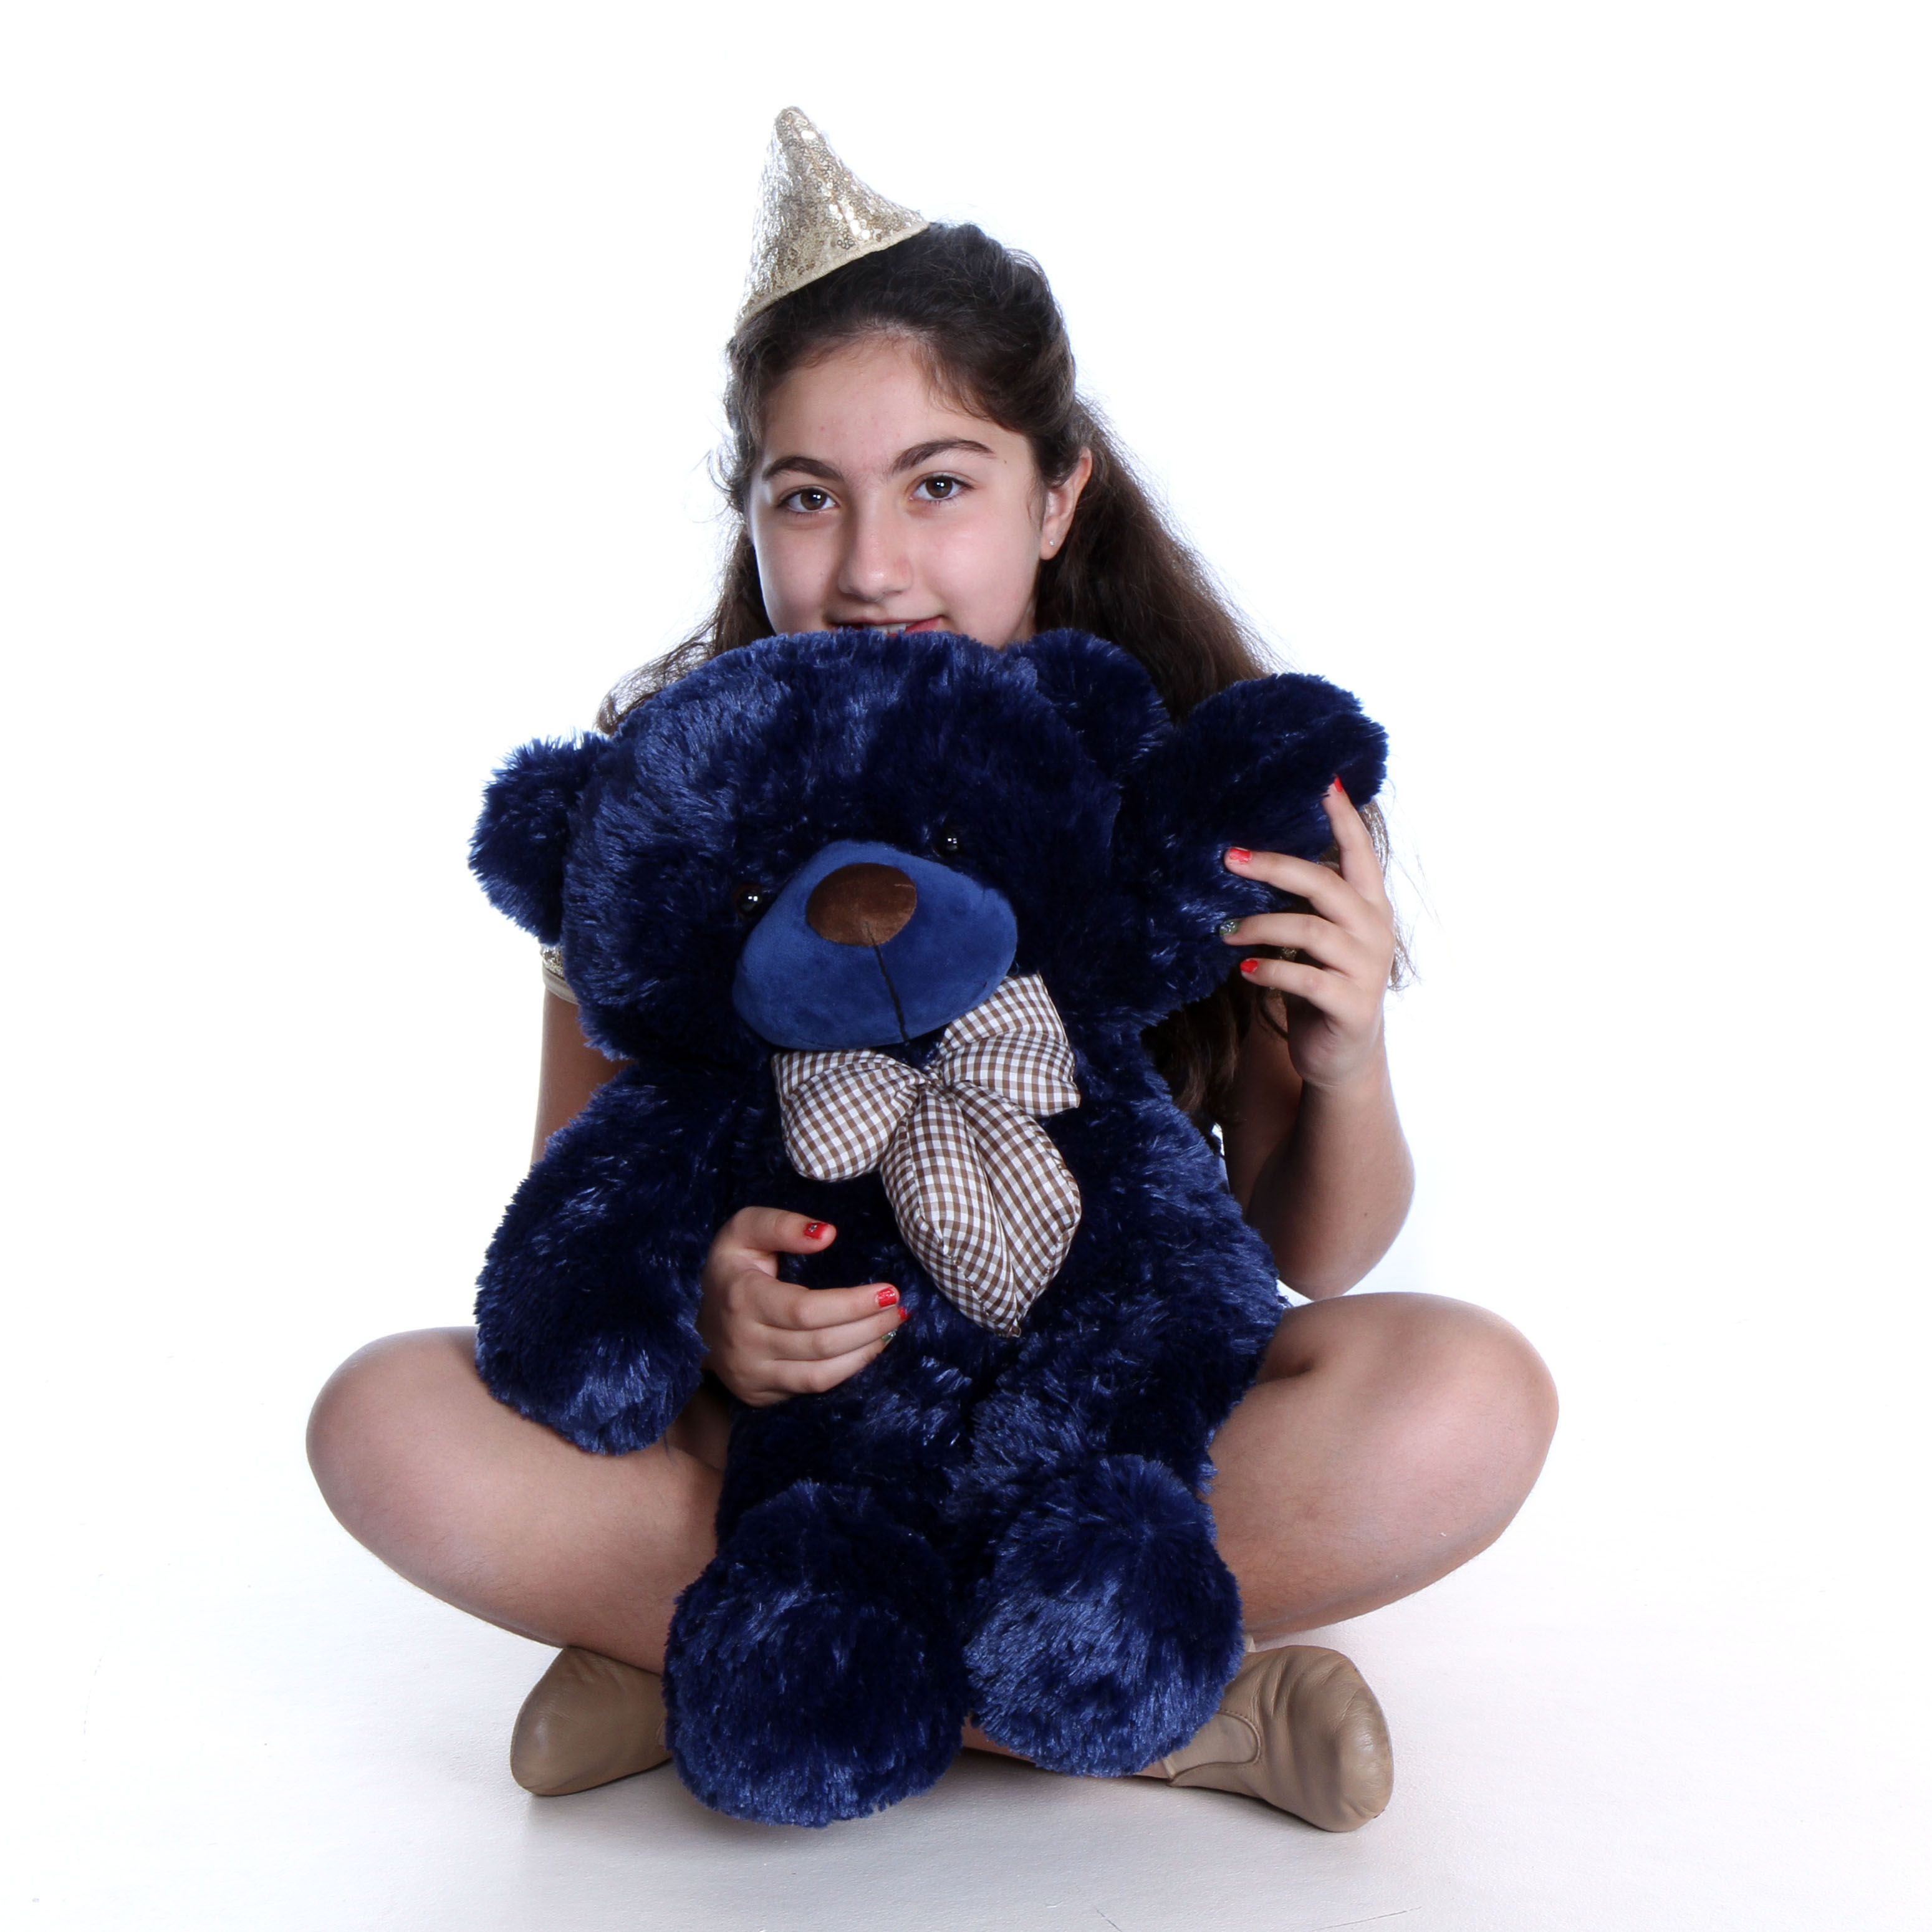 2ft-royce-cuddles-navy-blue-cute-teddy-bear.jpg